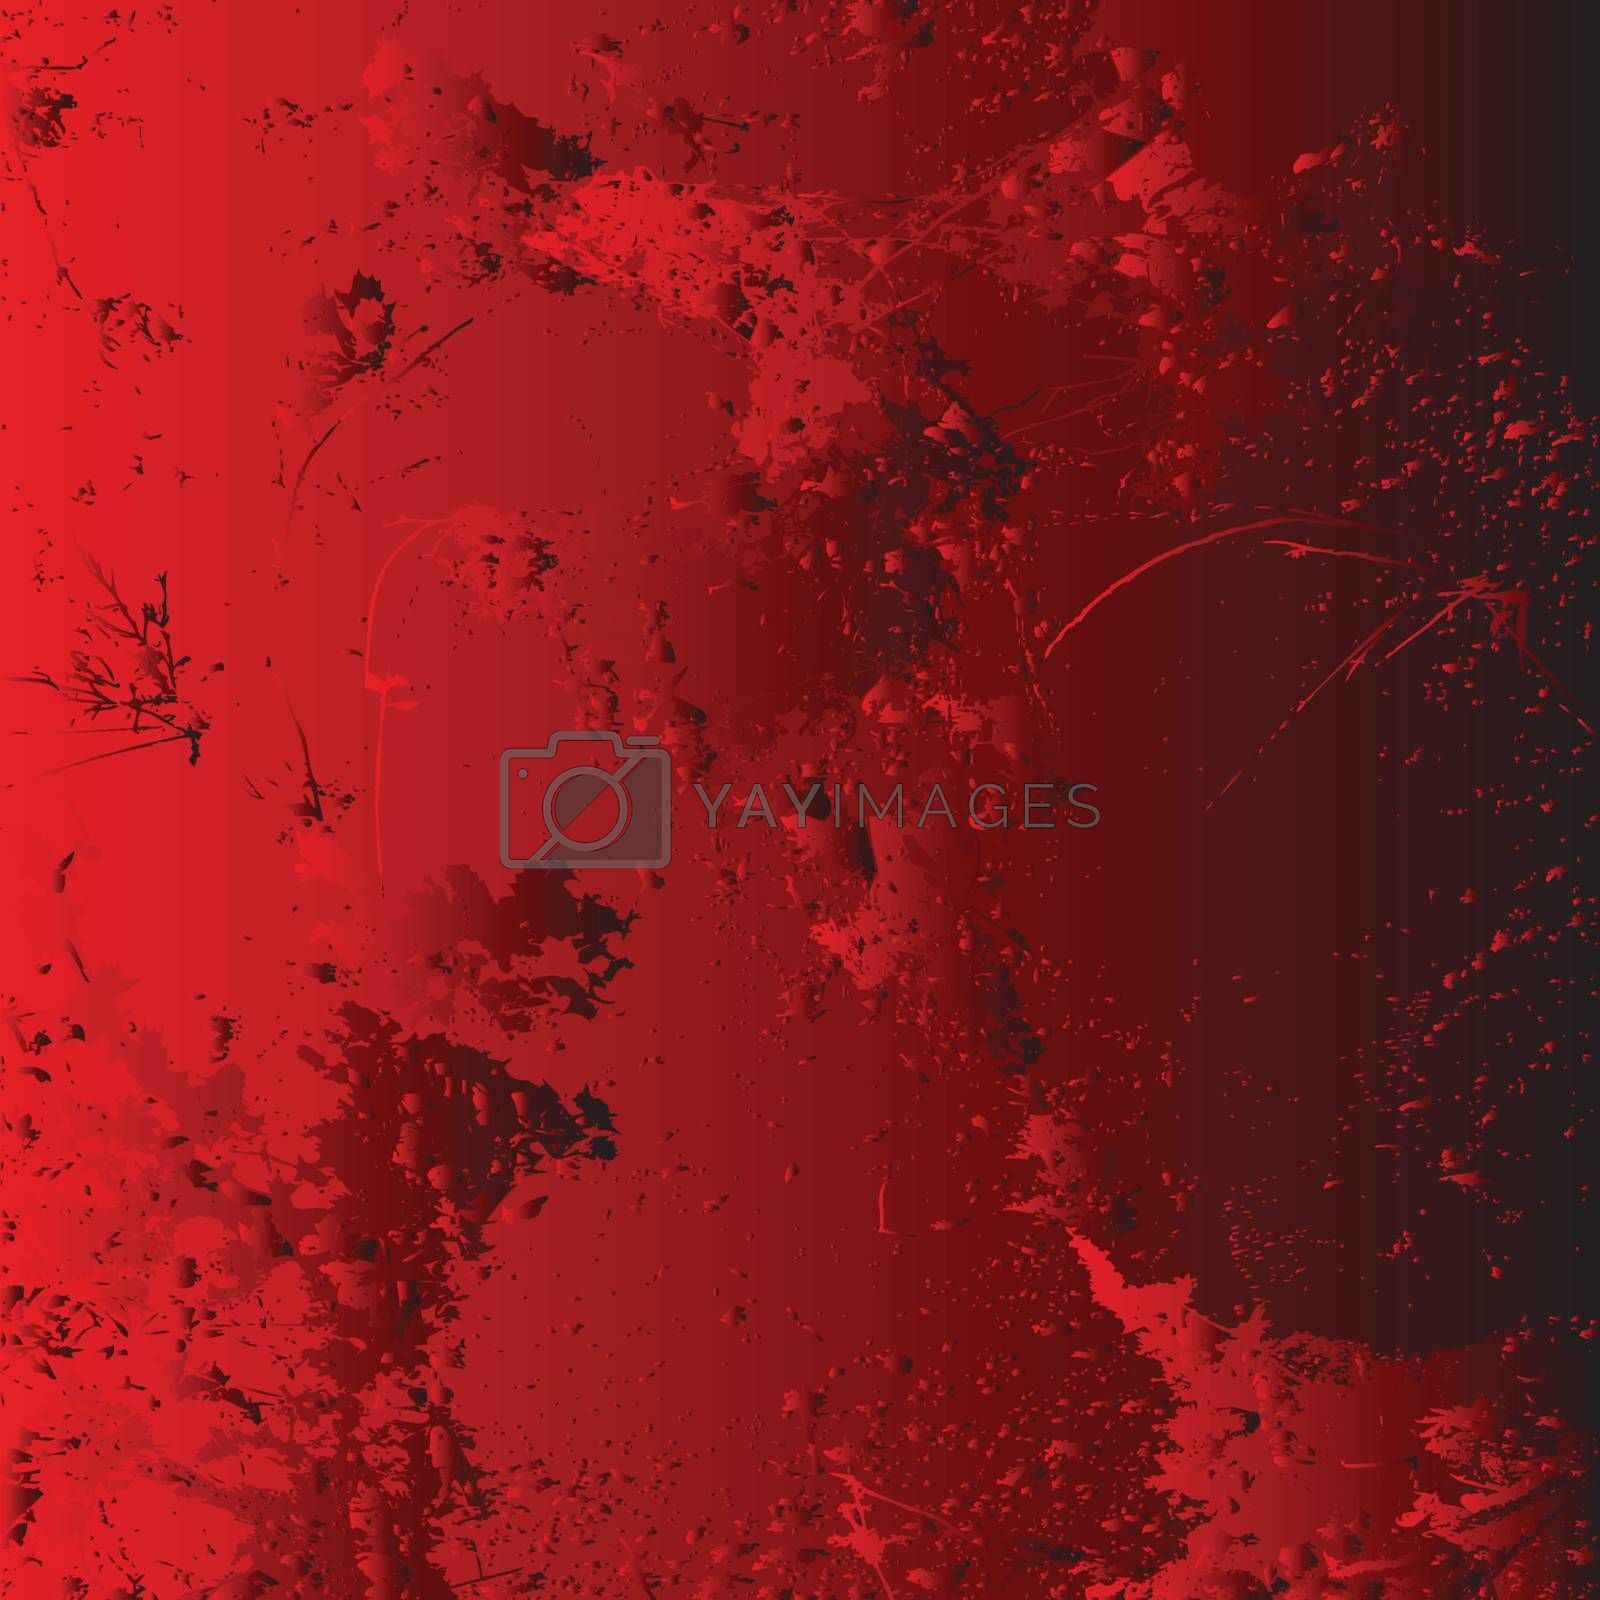 Blood Texture Background Royalty Free Stock Image Stock Photos Royalty Free Images Vectors Footage Yayimages Frame text black and white pattern, decorative border free, ink. https www yayimages com 1551433 blood texture background html